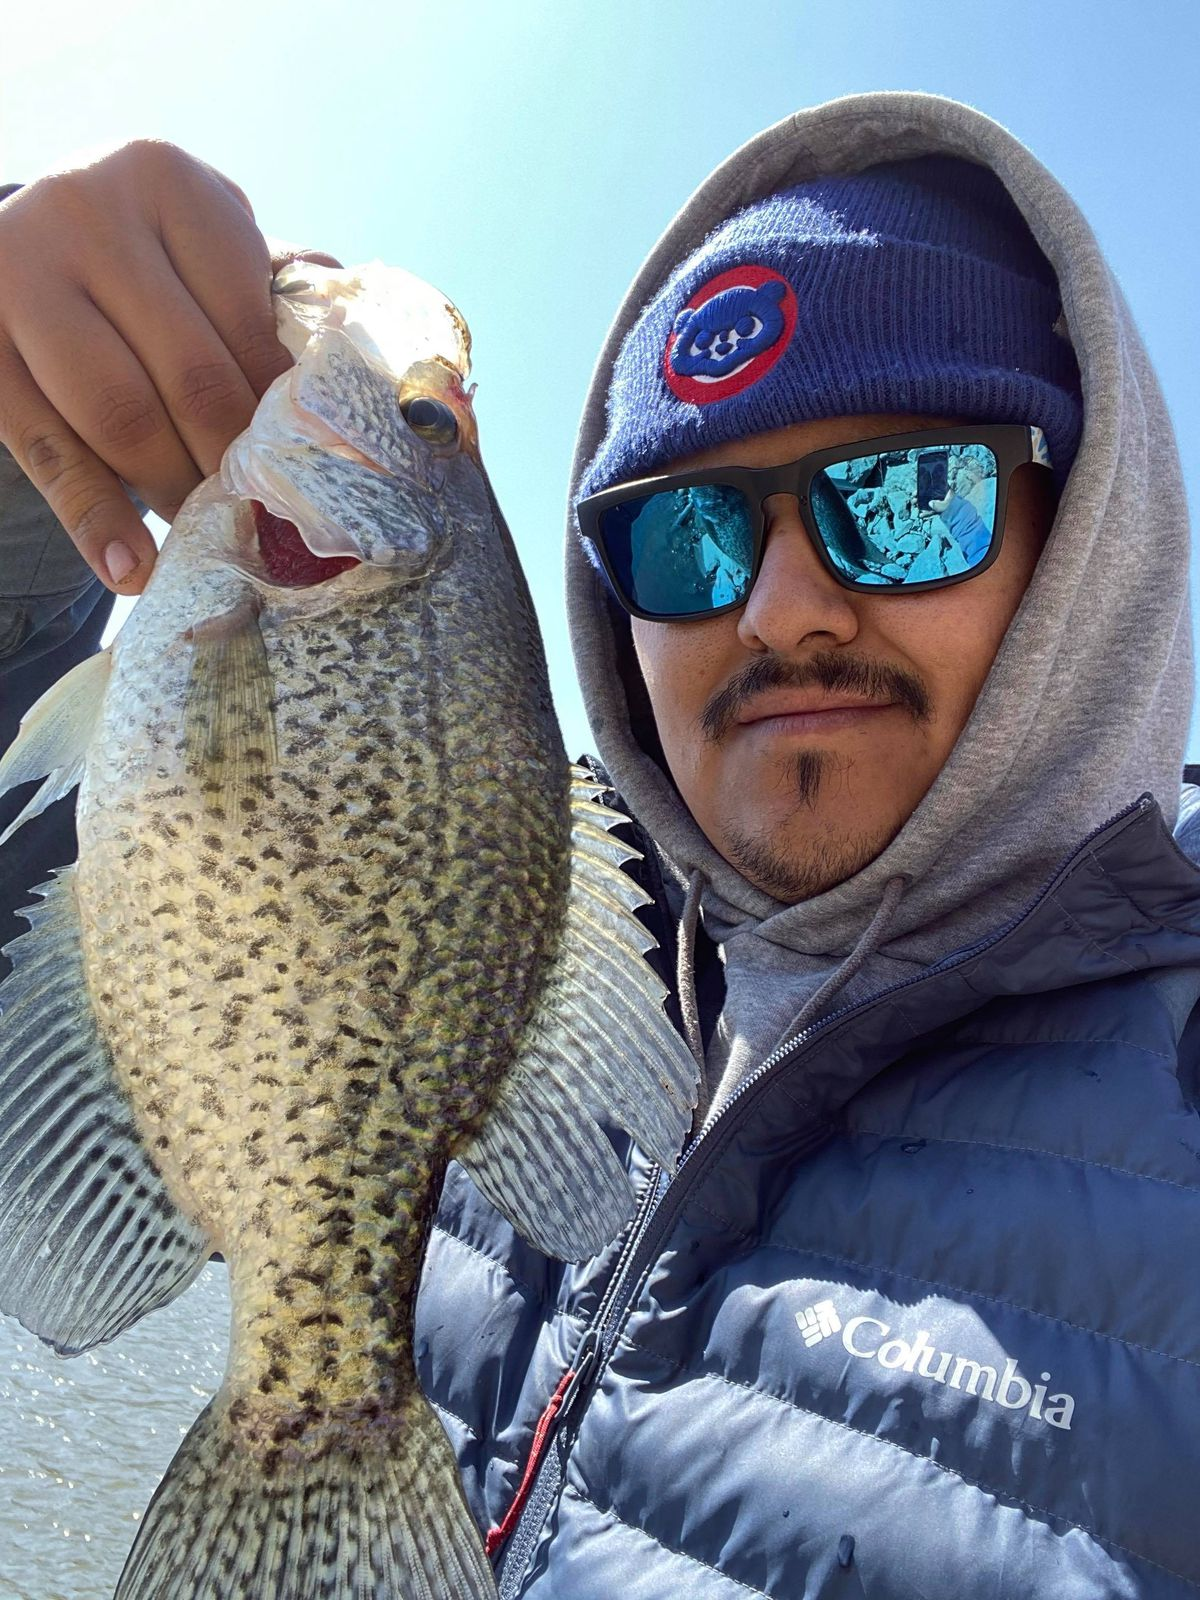 Adrian Medina with a nice crappie from the Chain O'Lakes. Provided photo